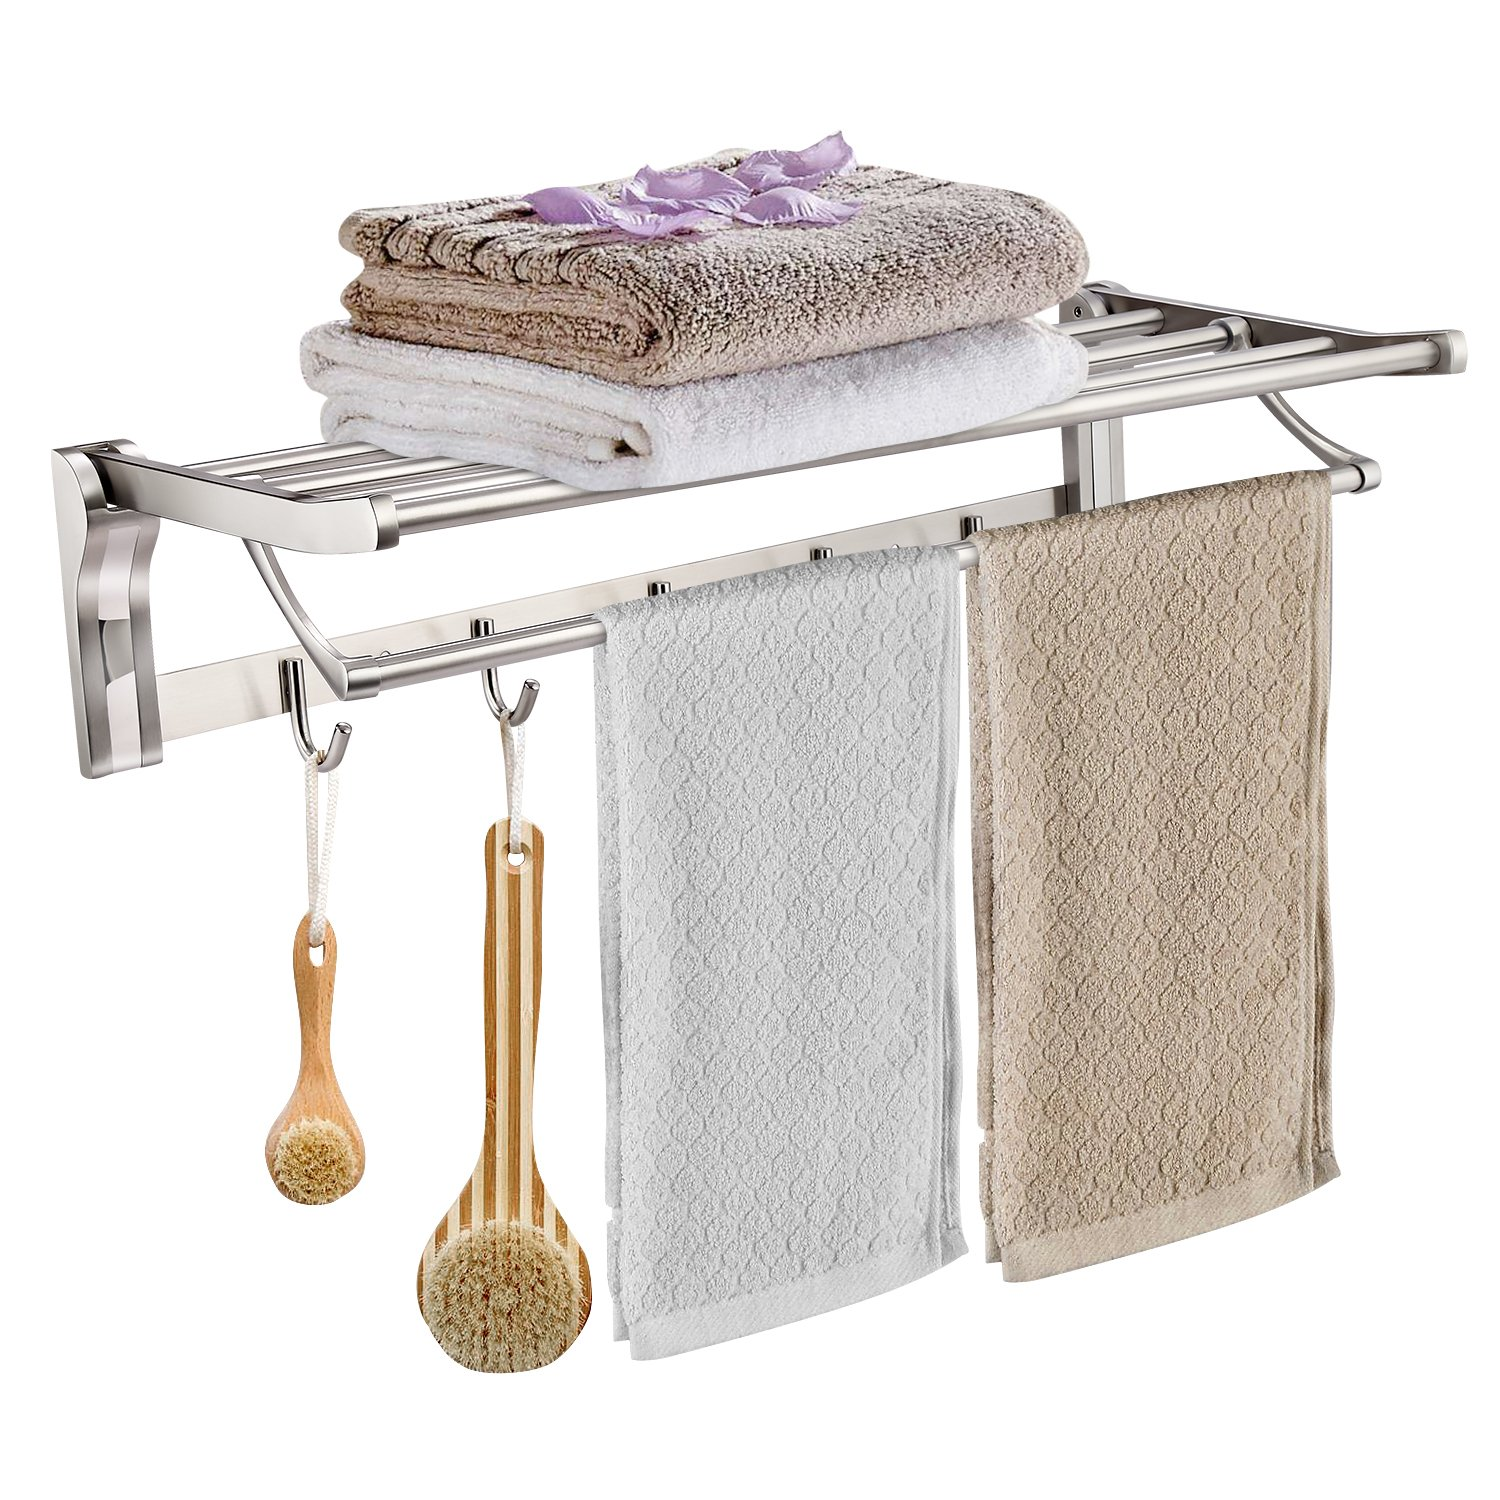 Homdox Bathroom Shelves Wall Mounted Towel Rack Stainless Steel Foldable with 5 Hooks Folding/Swivel Towel Bar Brushed Finish for Hotel/Home (23.6 Inch)